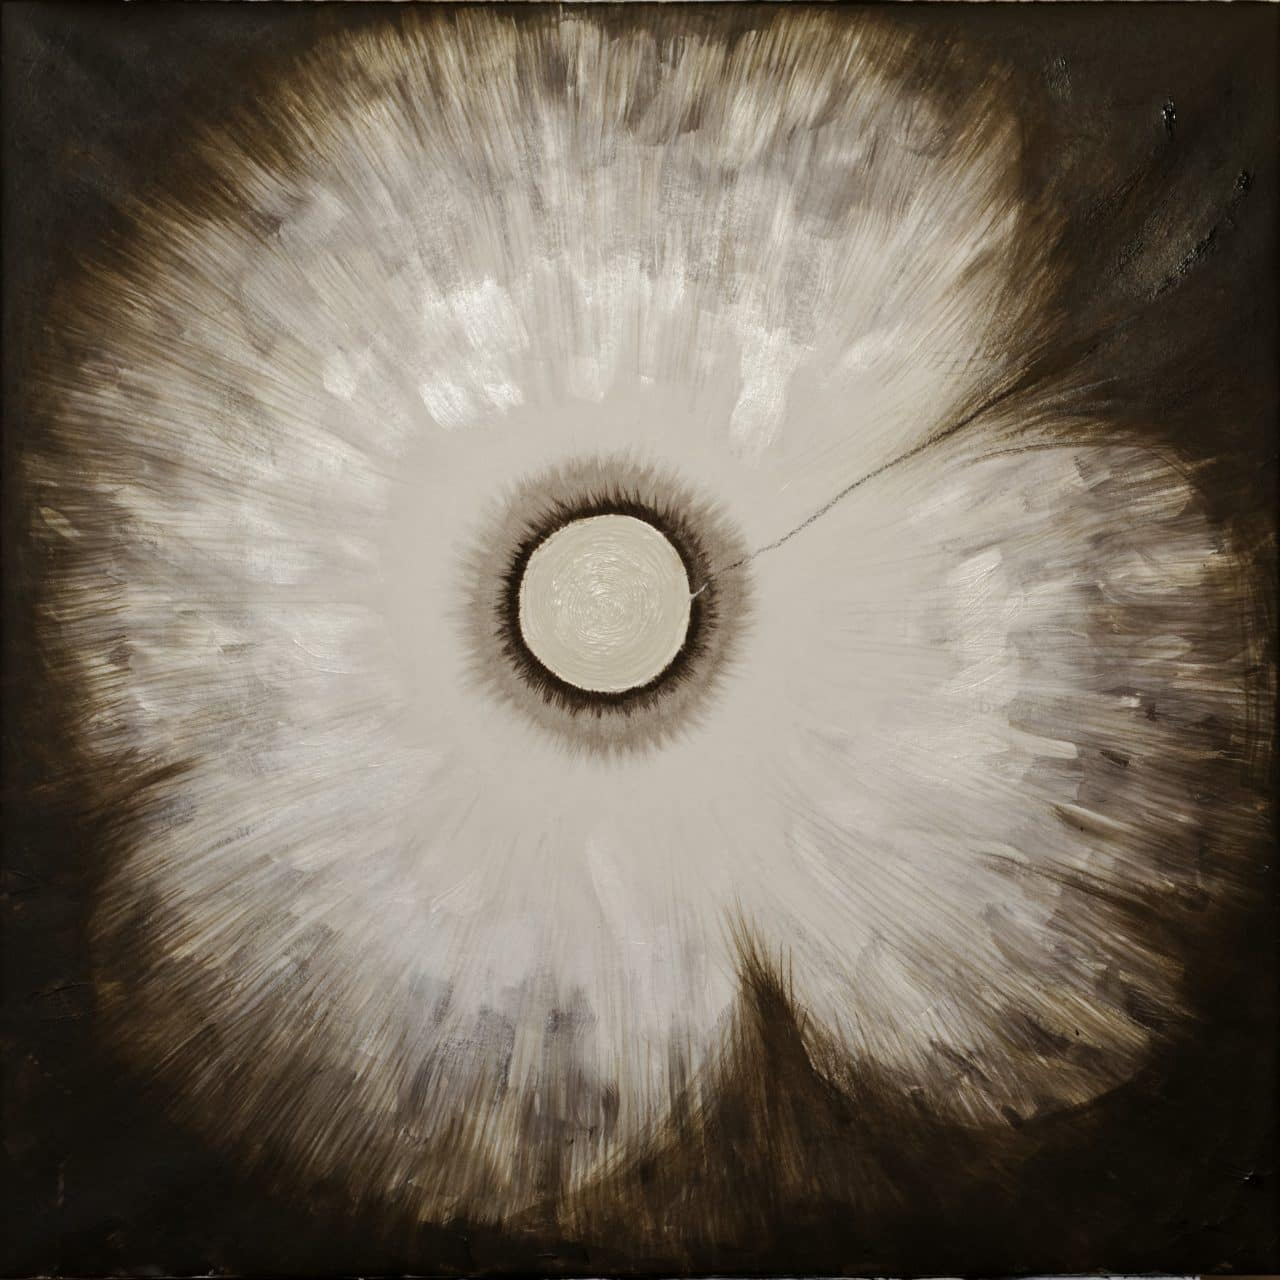 Into The Unknown #6 Acrylic Charcoal 68x68cm 2016 Jeroen Carelse